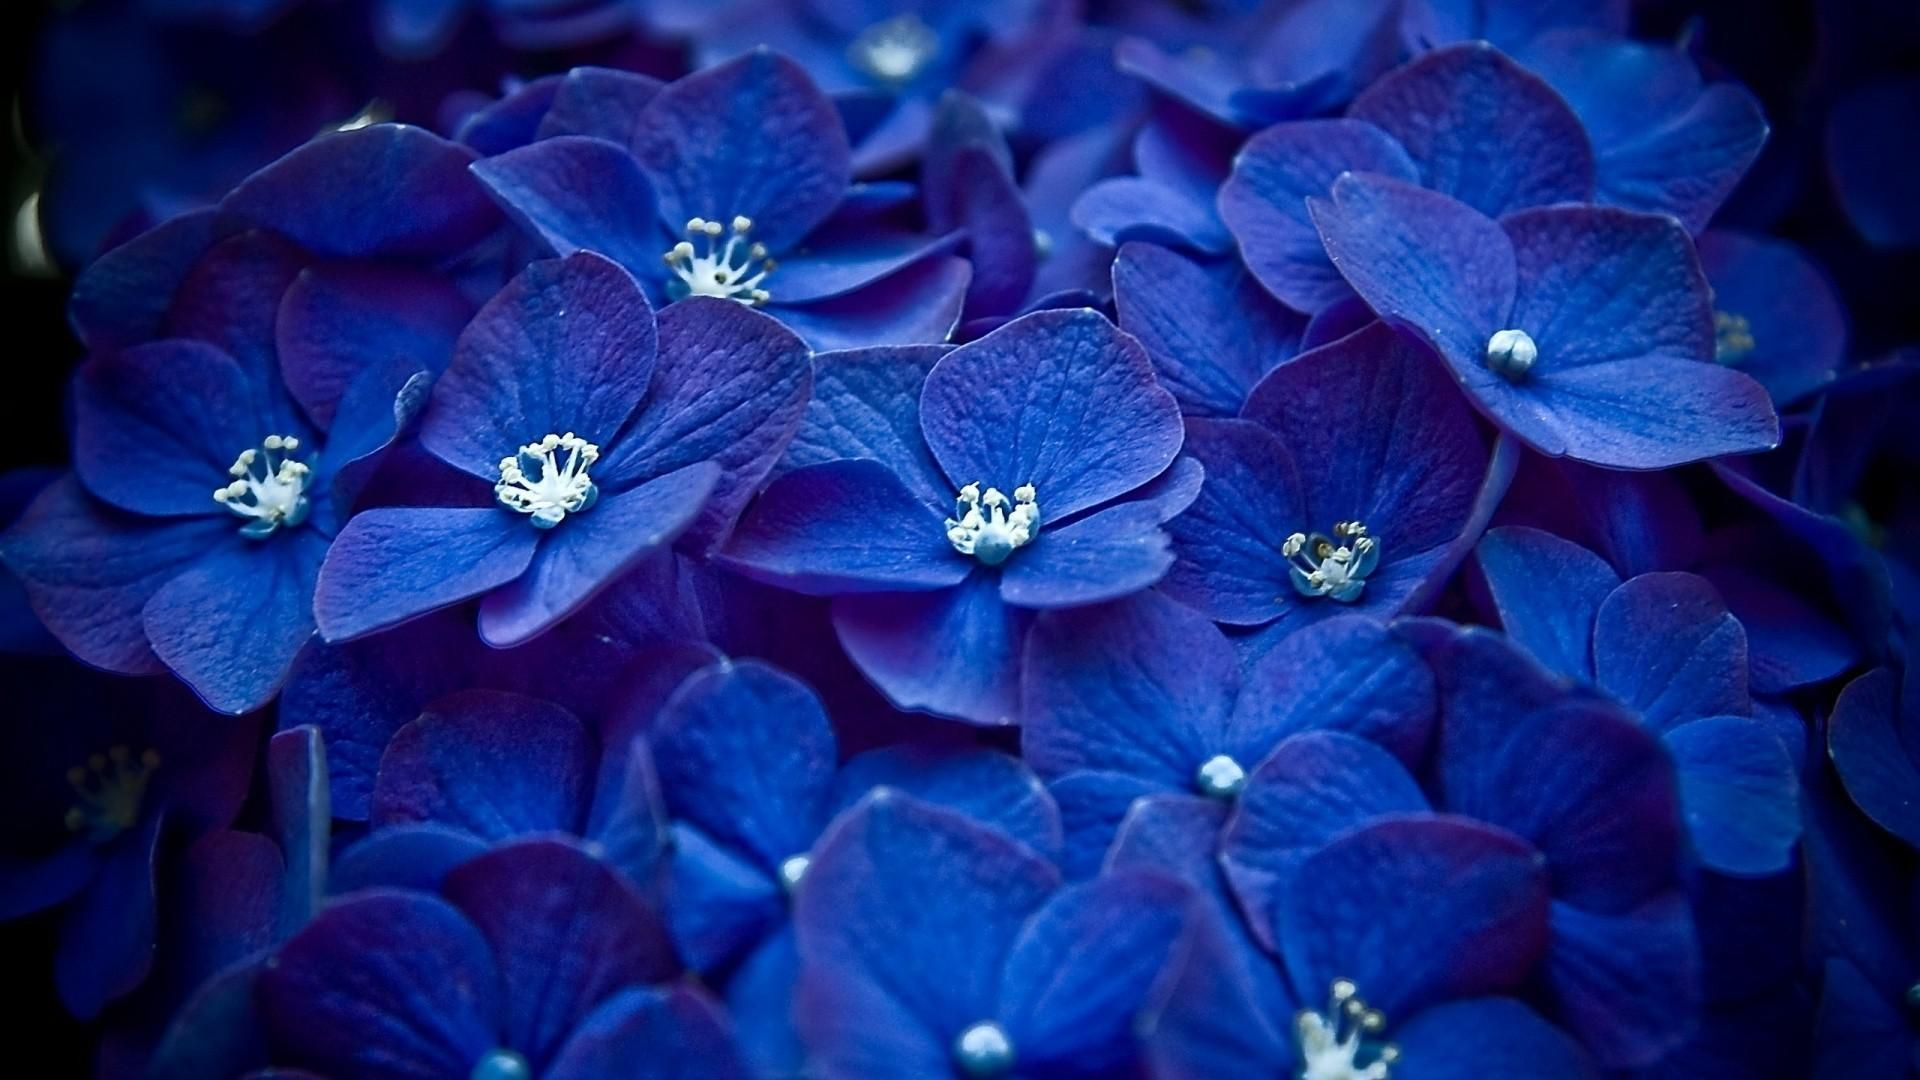 blue hydrangea flowers hydrangea hd wallpapers download